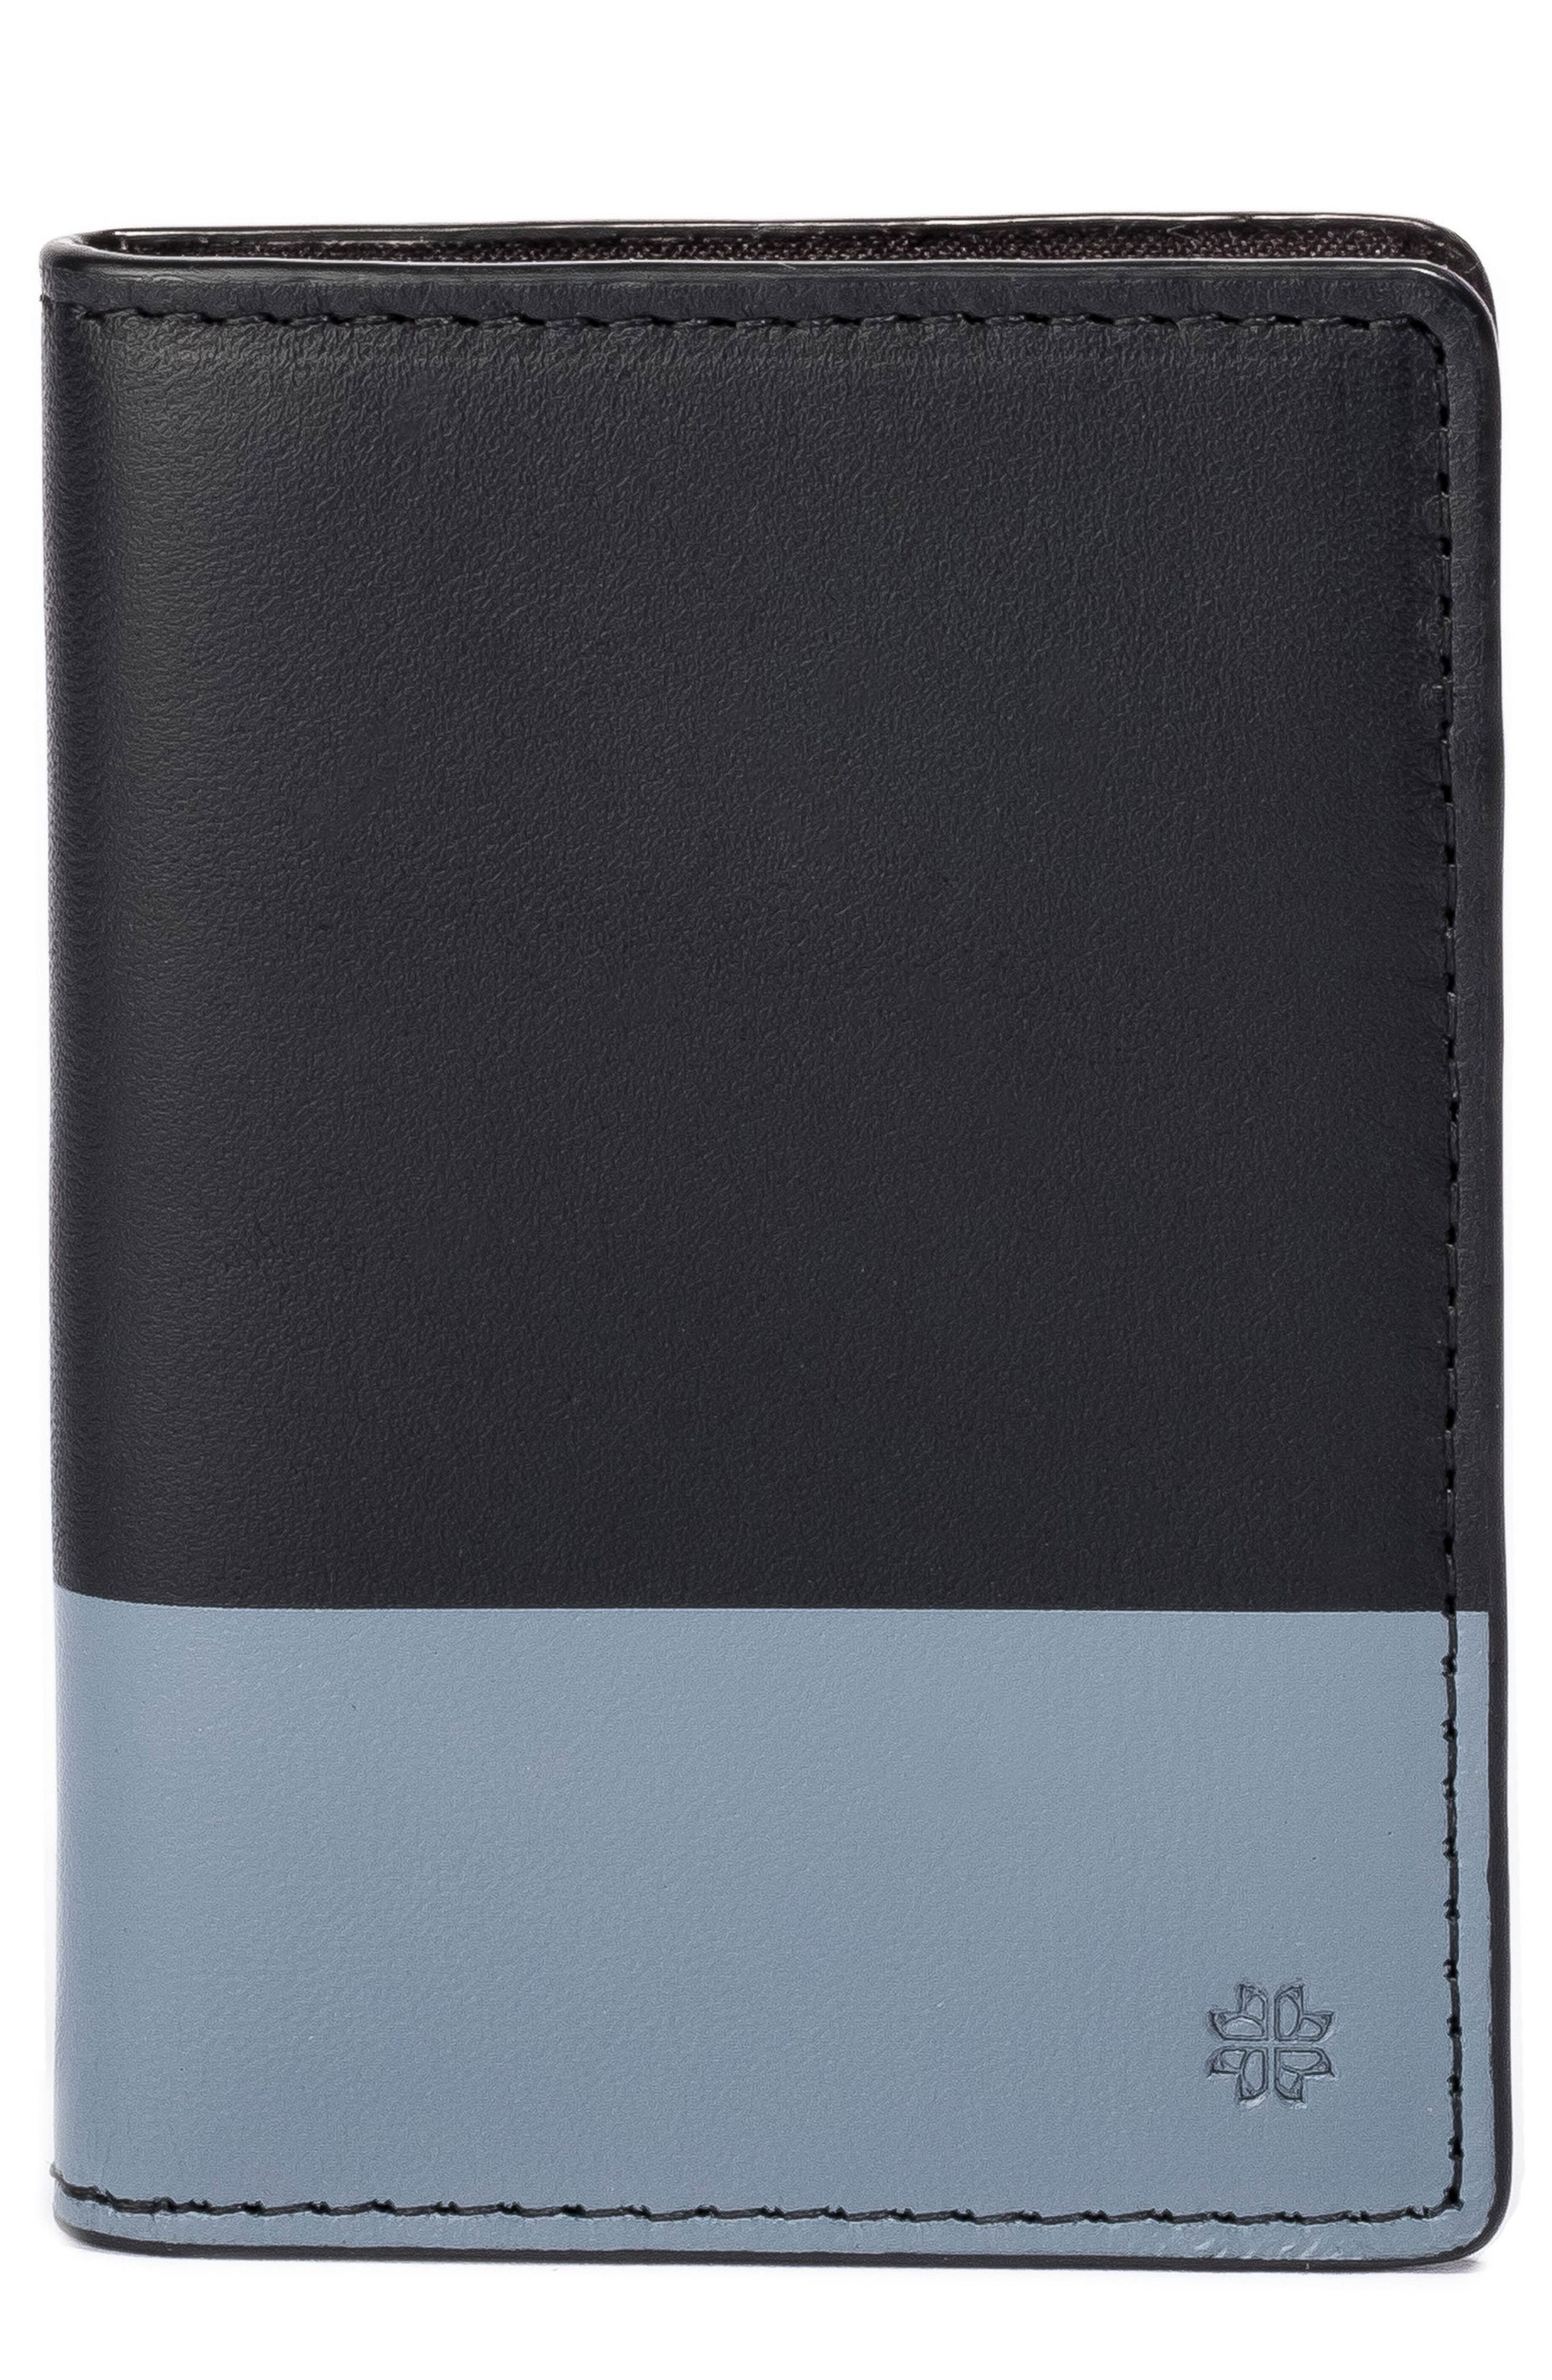 Leather Wallet,                         Main,                         color, 020